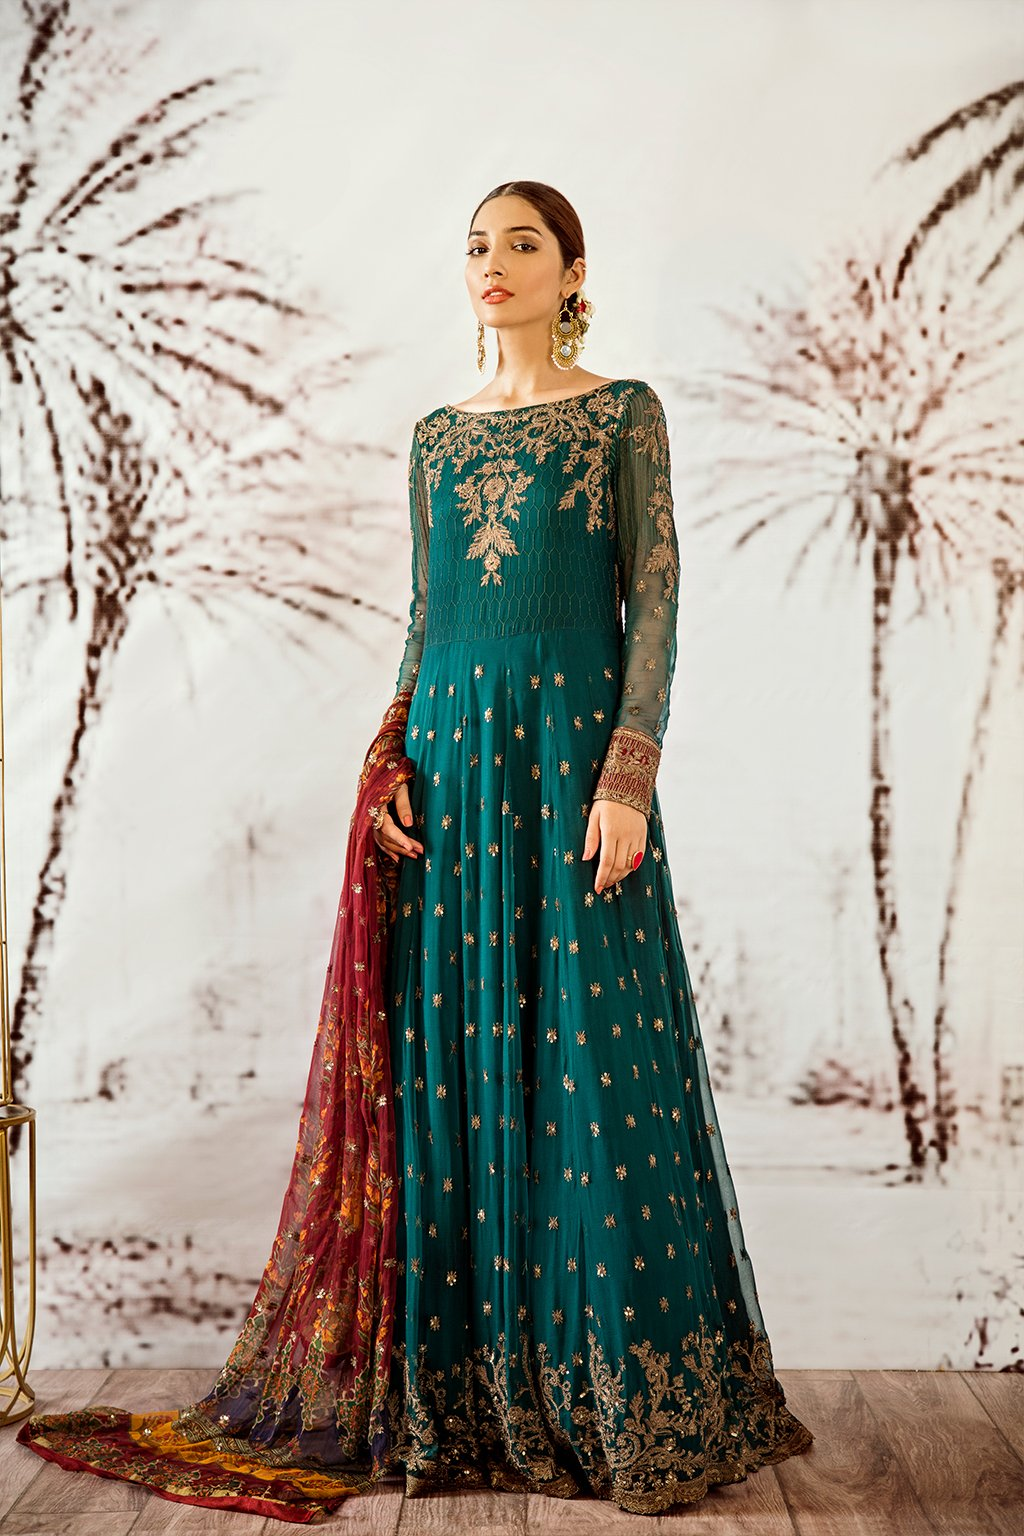 Iznik Designer Suit Wedding 2020-OIC-01 COBALT GREEN